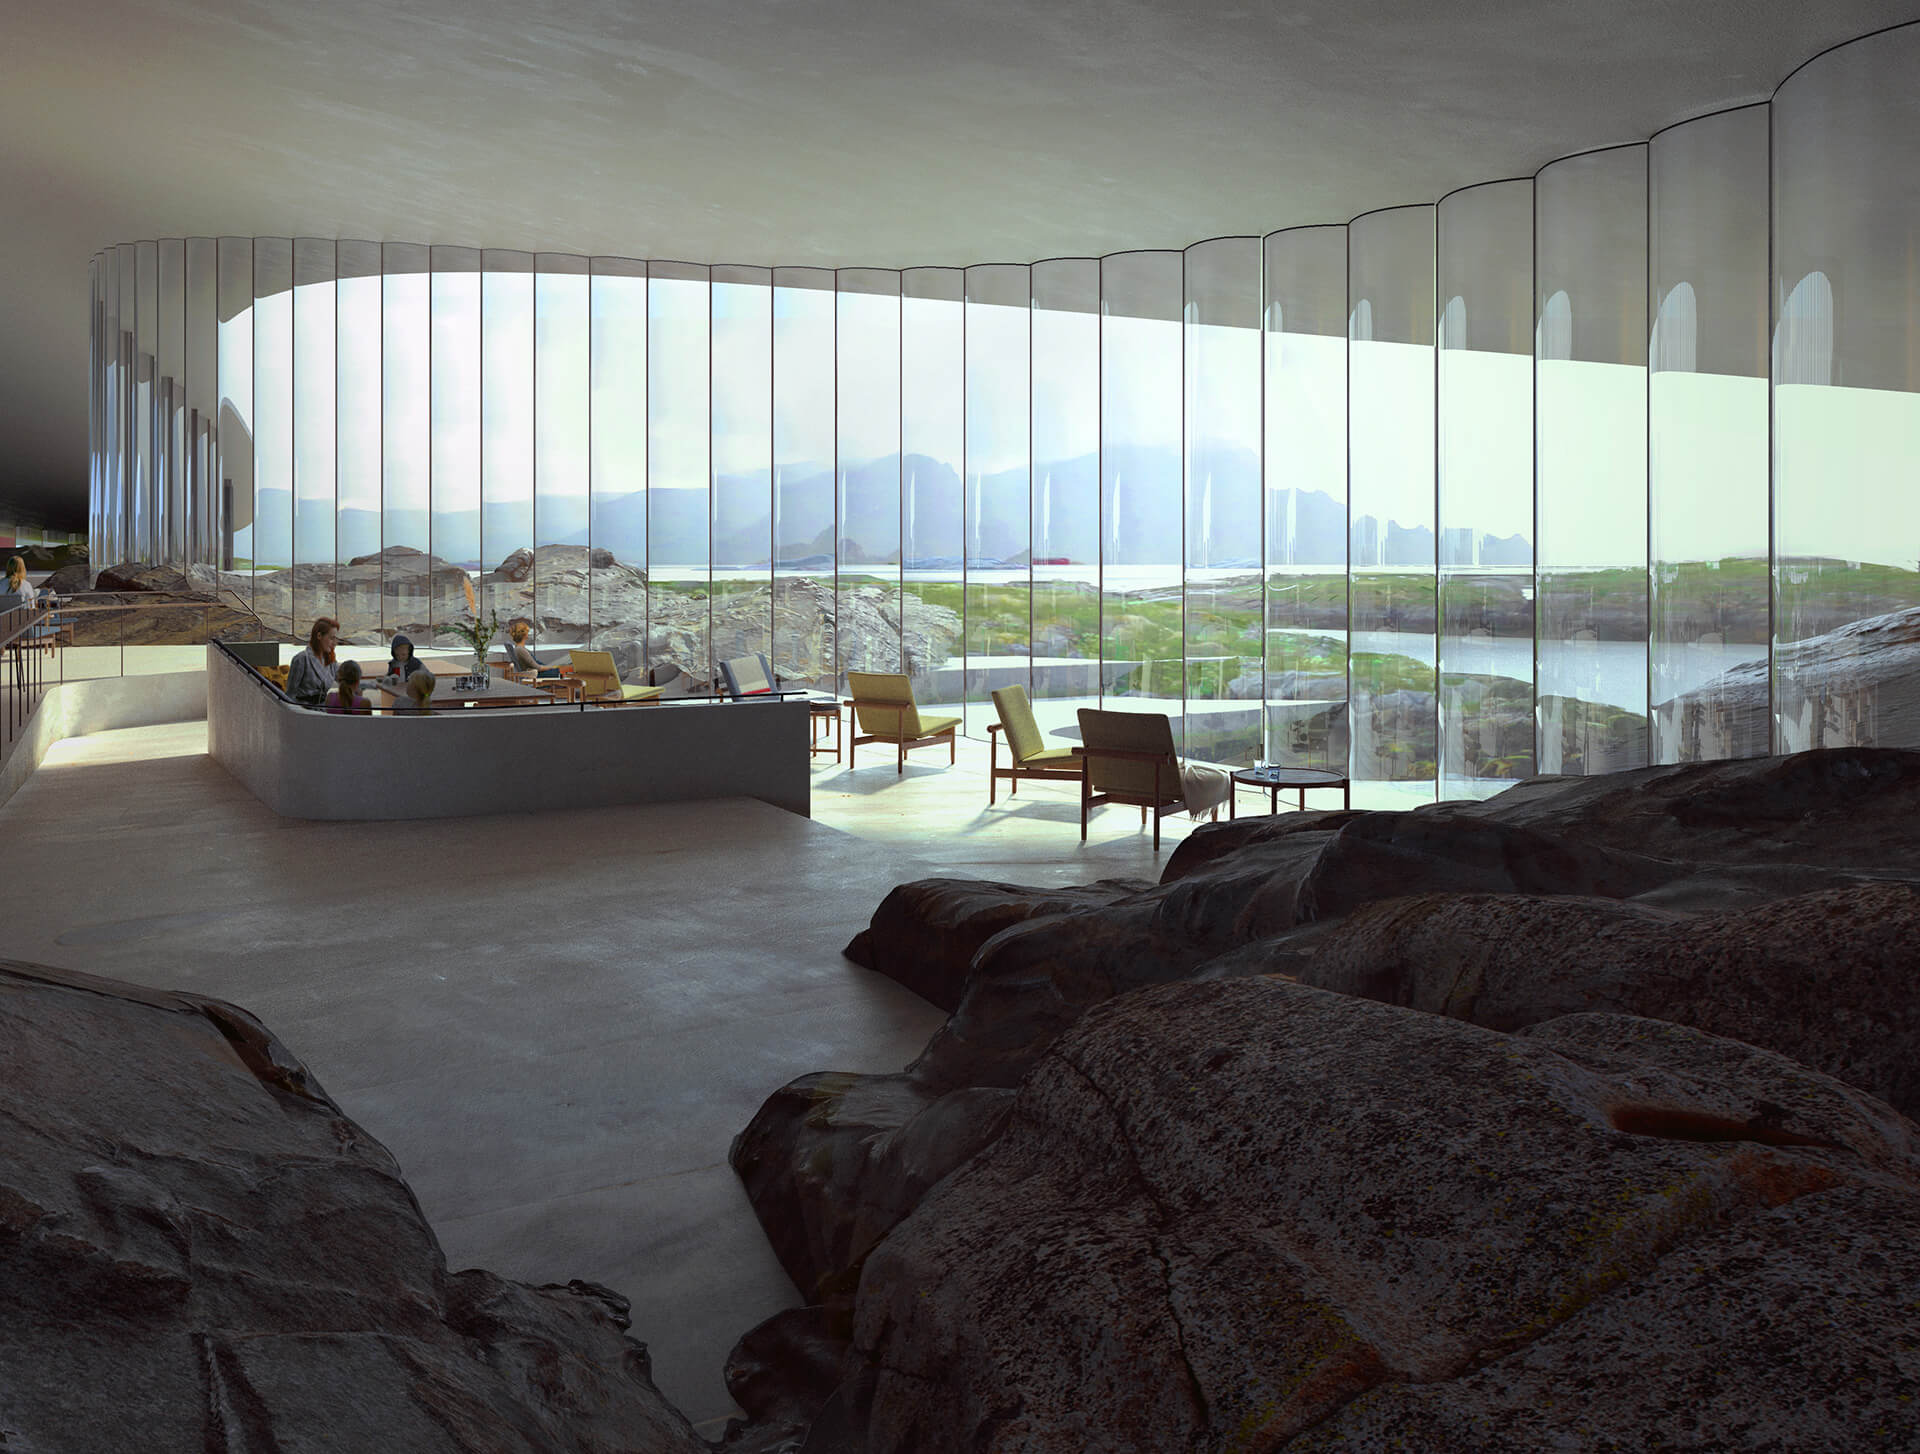 Large windows etched on The Whale open towards the archipelago, providing stunning views | The Whale by Denmark based Dorte Mandrup | STIRworld